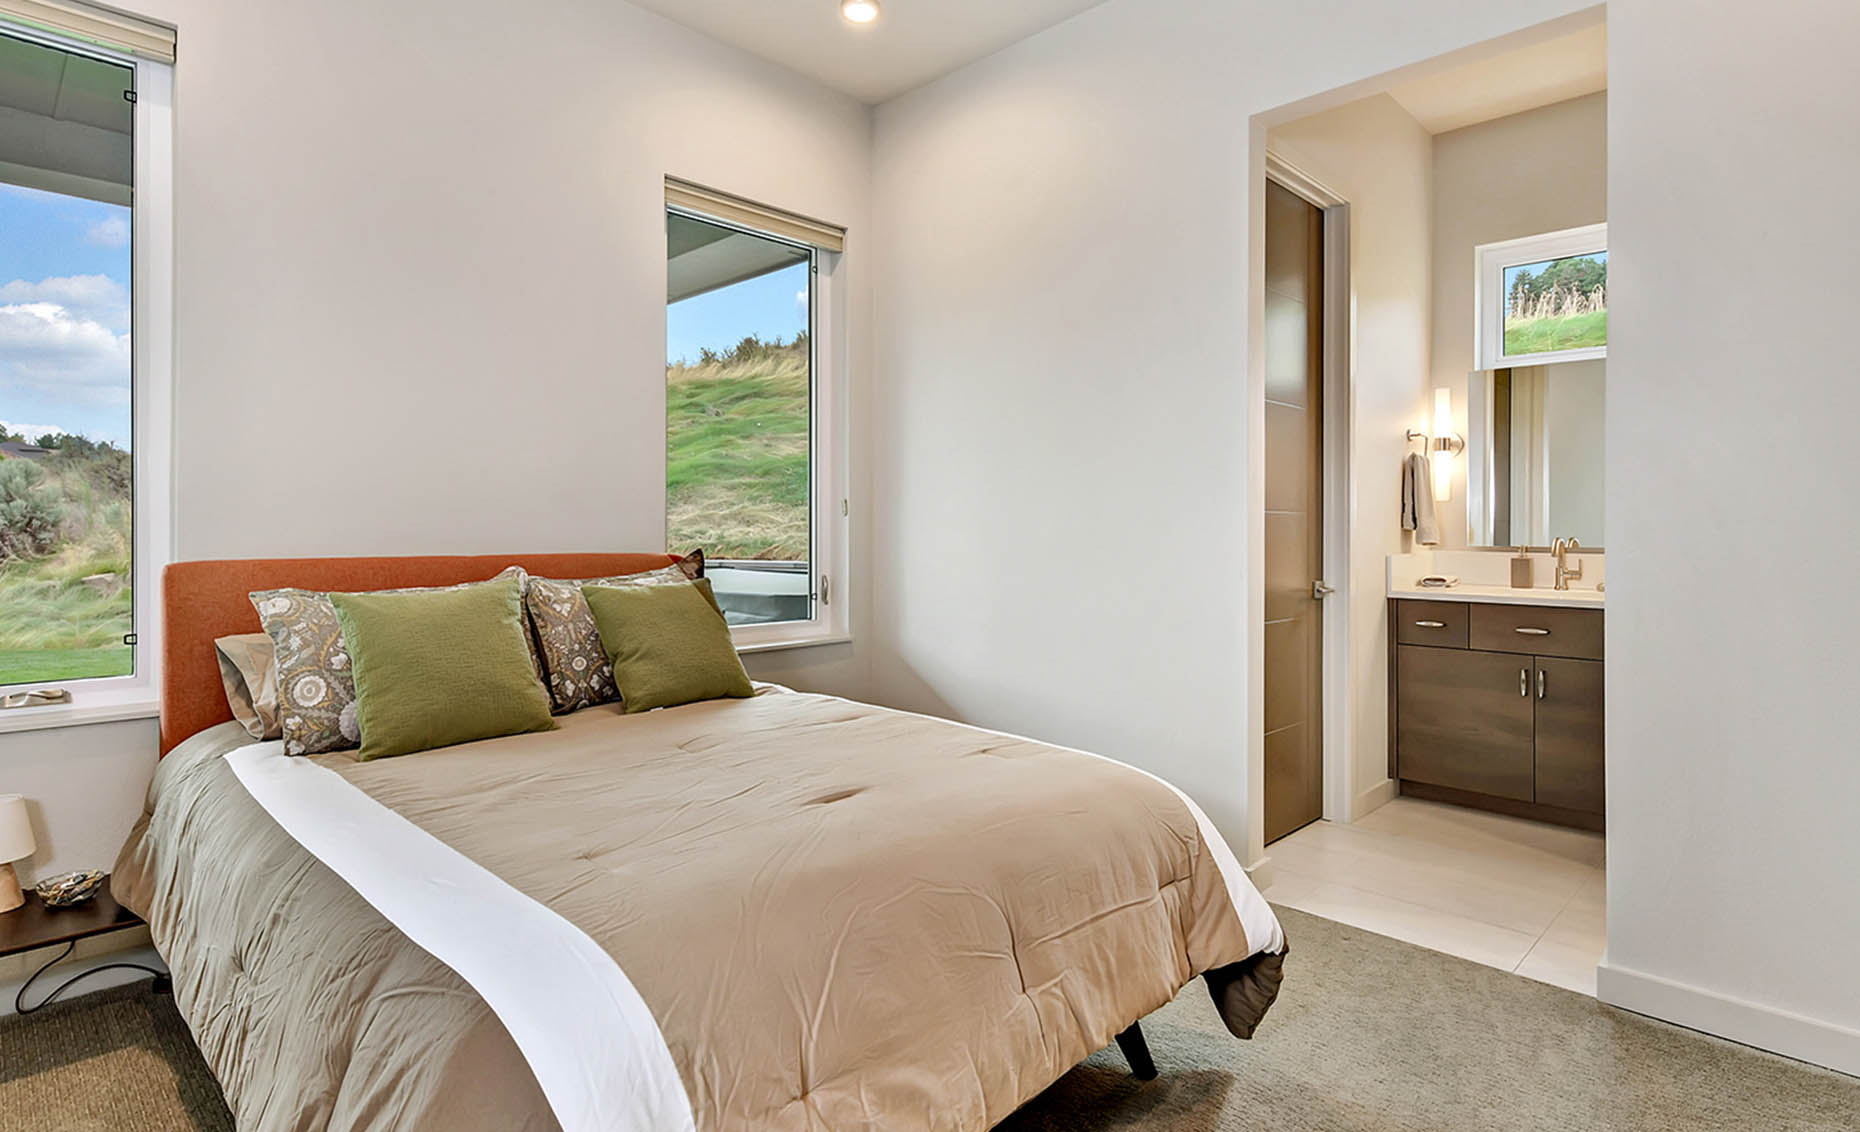 The Nature View Custom Home Bedroom and Bathroom